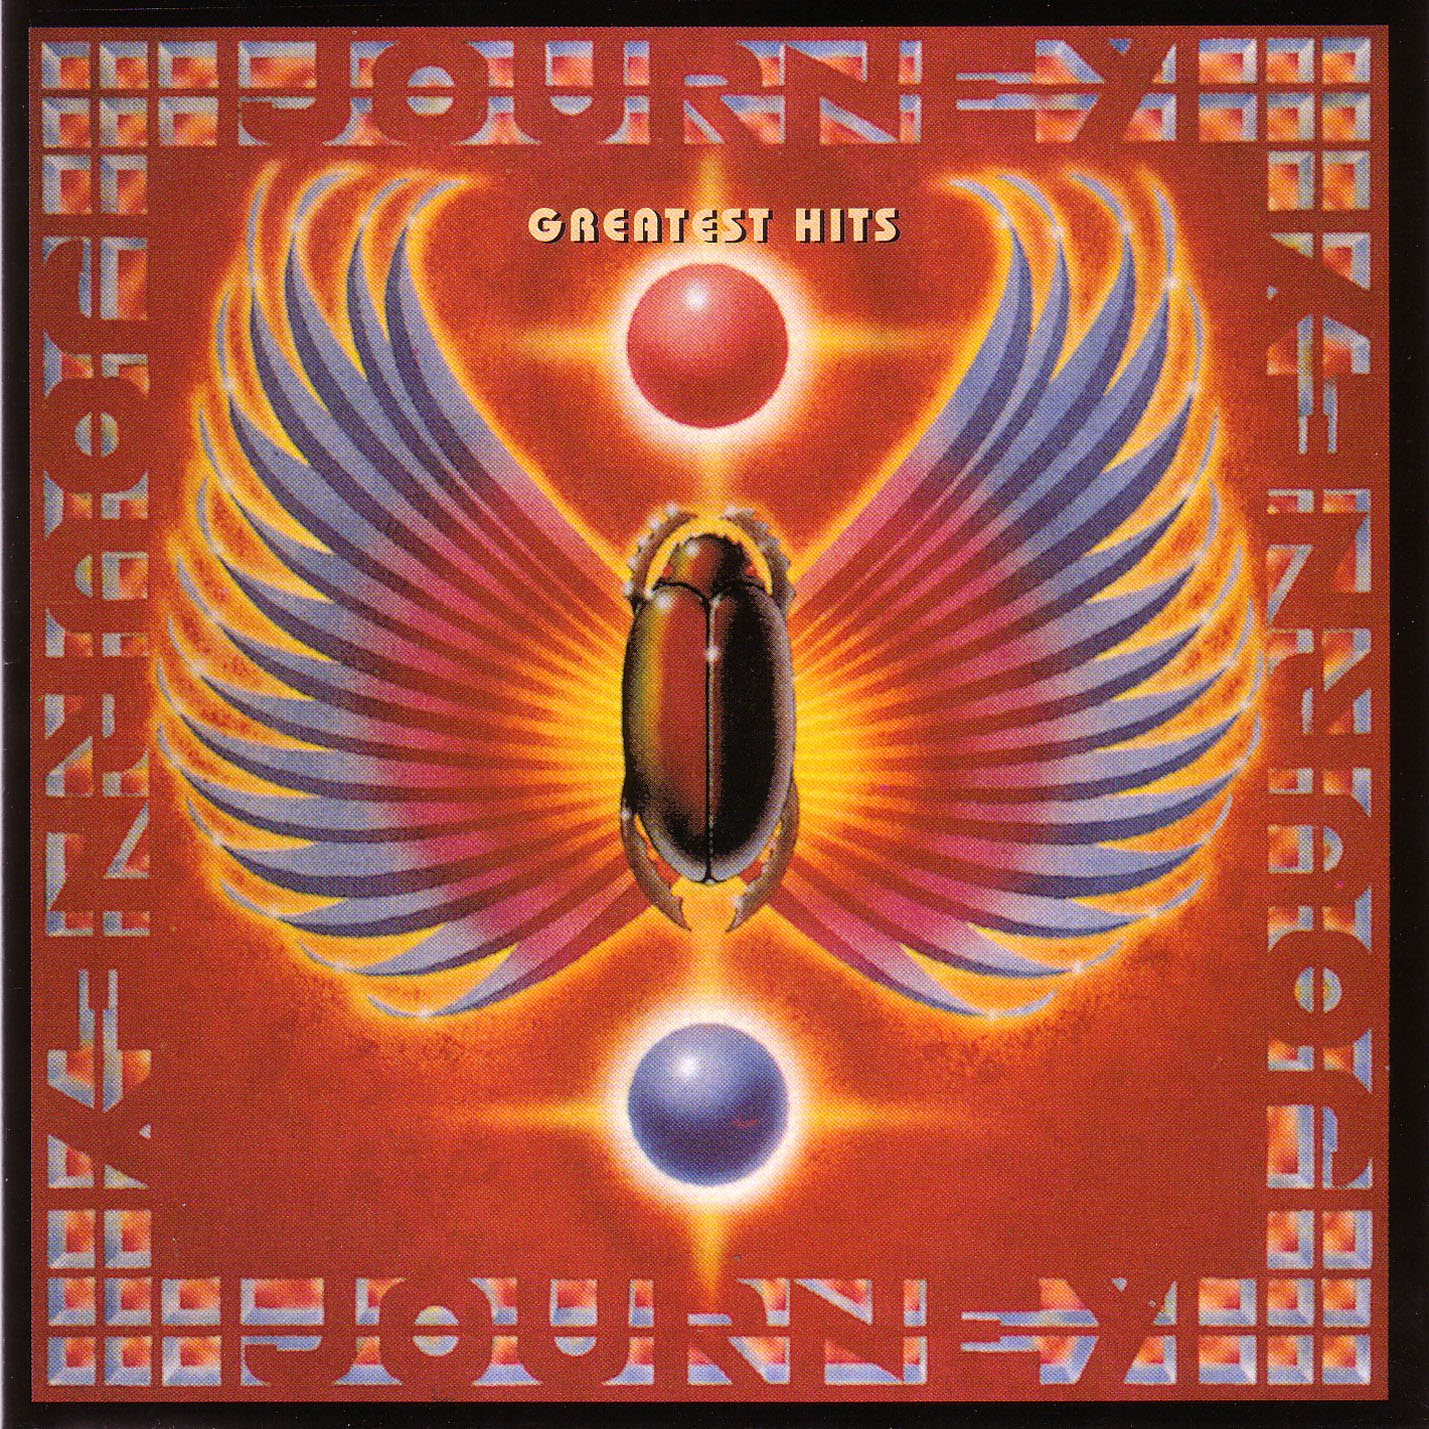 Journey - Greatest Hits | FULL LP DOWNLOAD